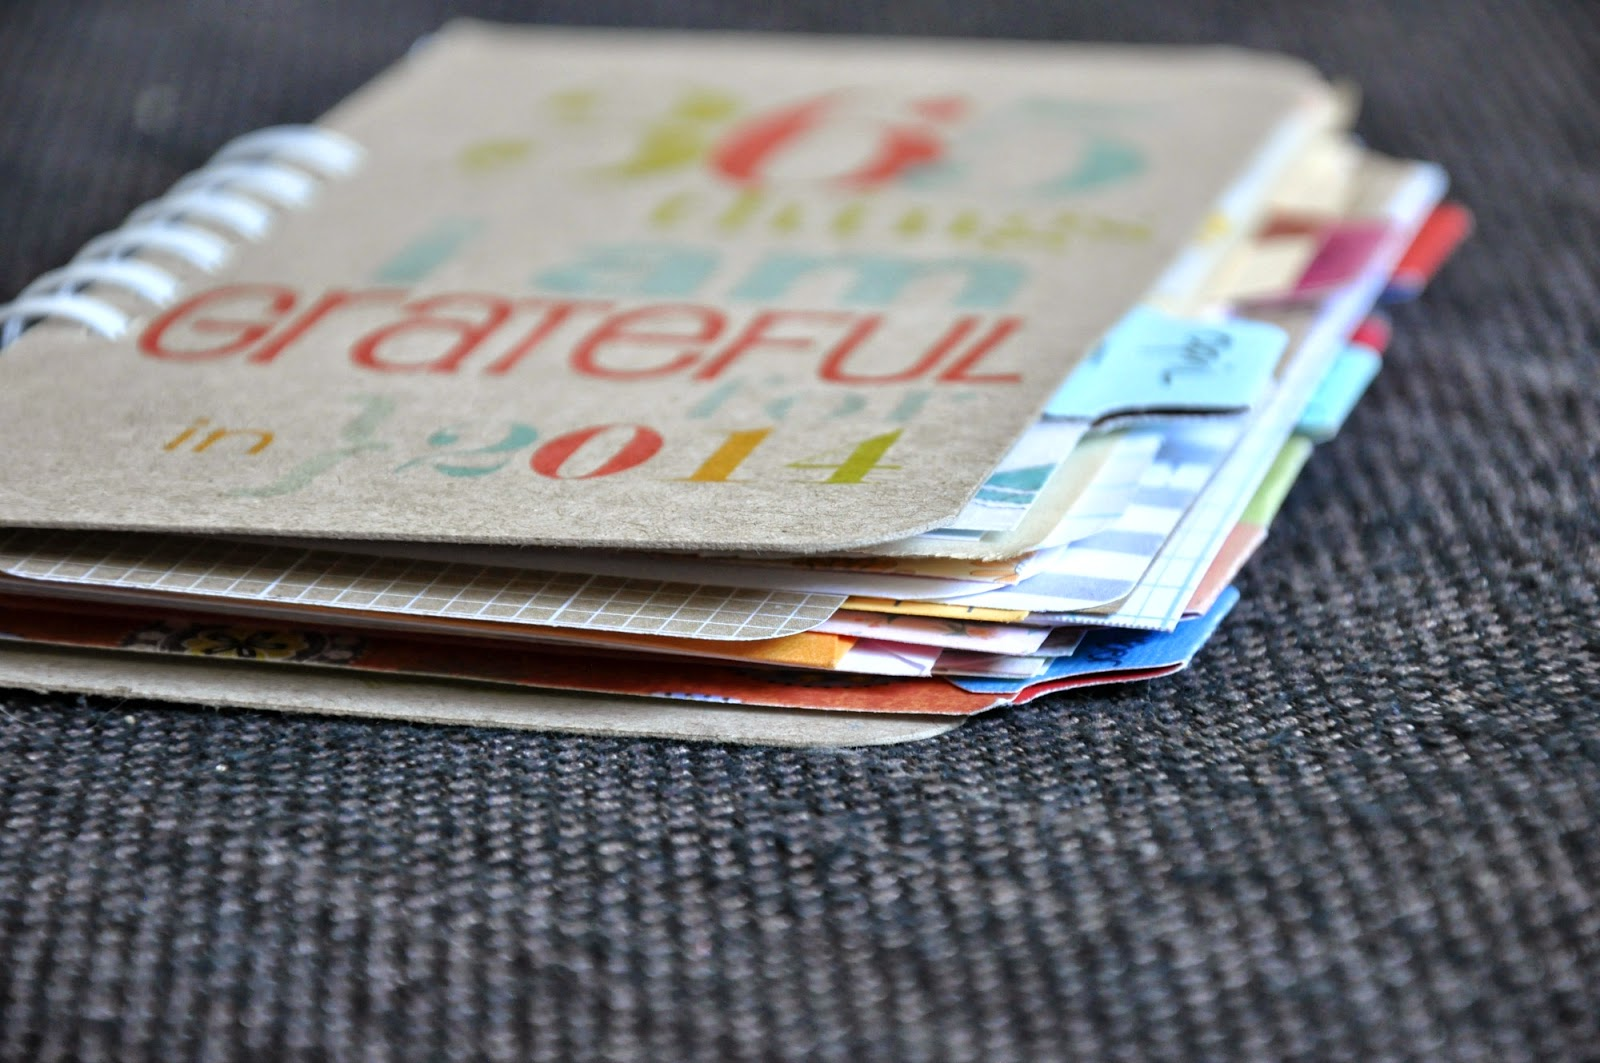 #iloveitall #gratitude #gratitude journal #mini album #scrapbooking #grateful #365